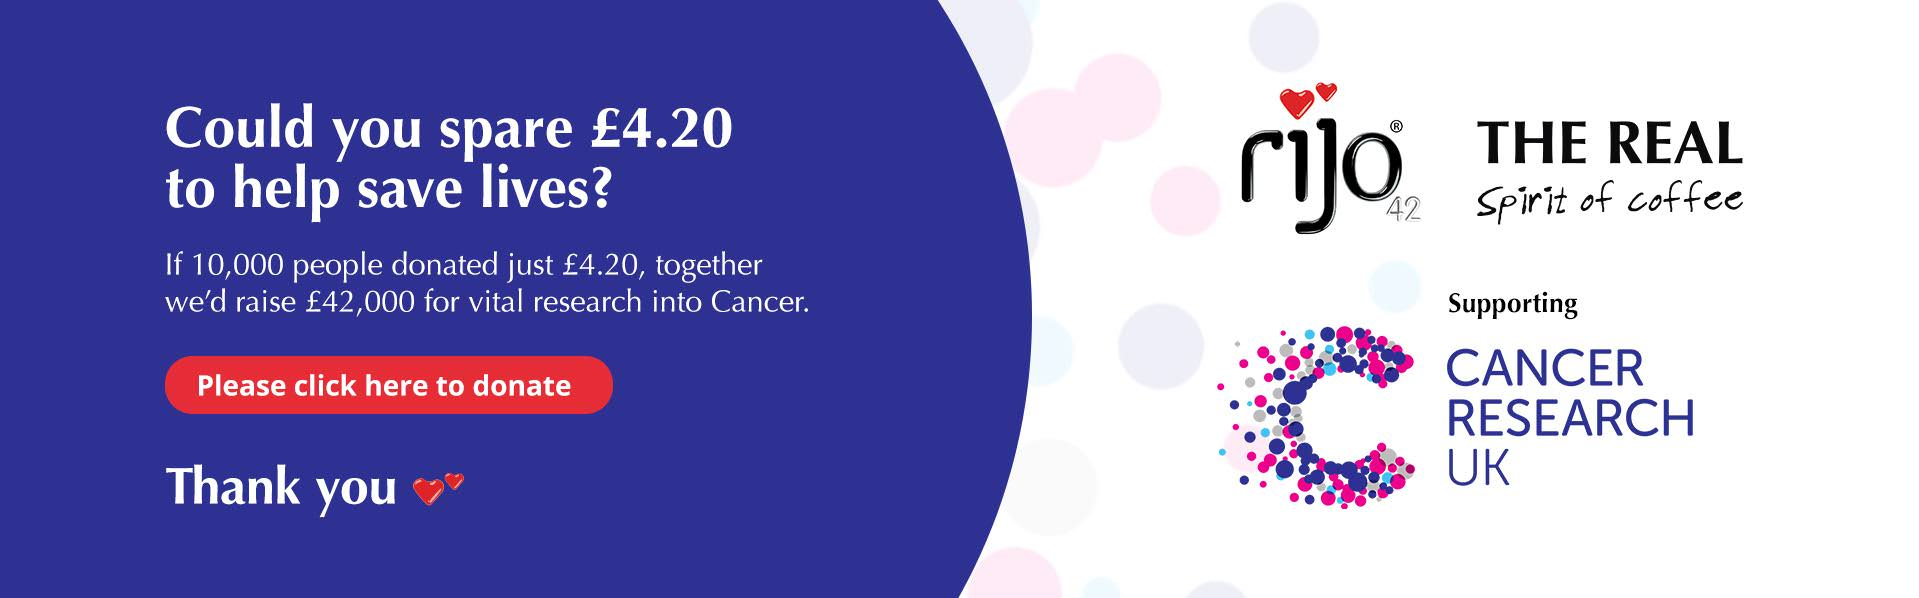 rijo42 Cancer Research UK